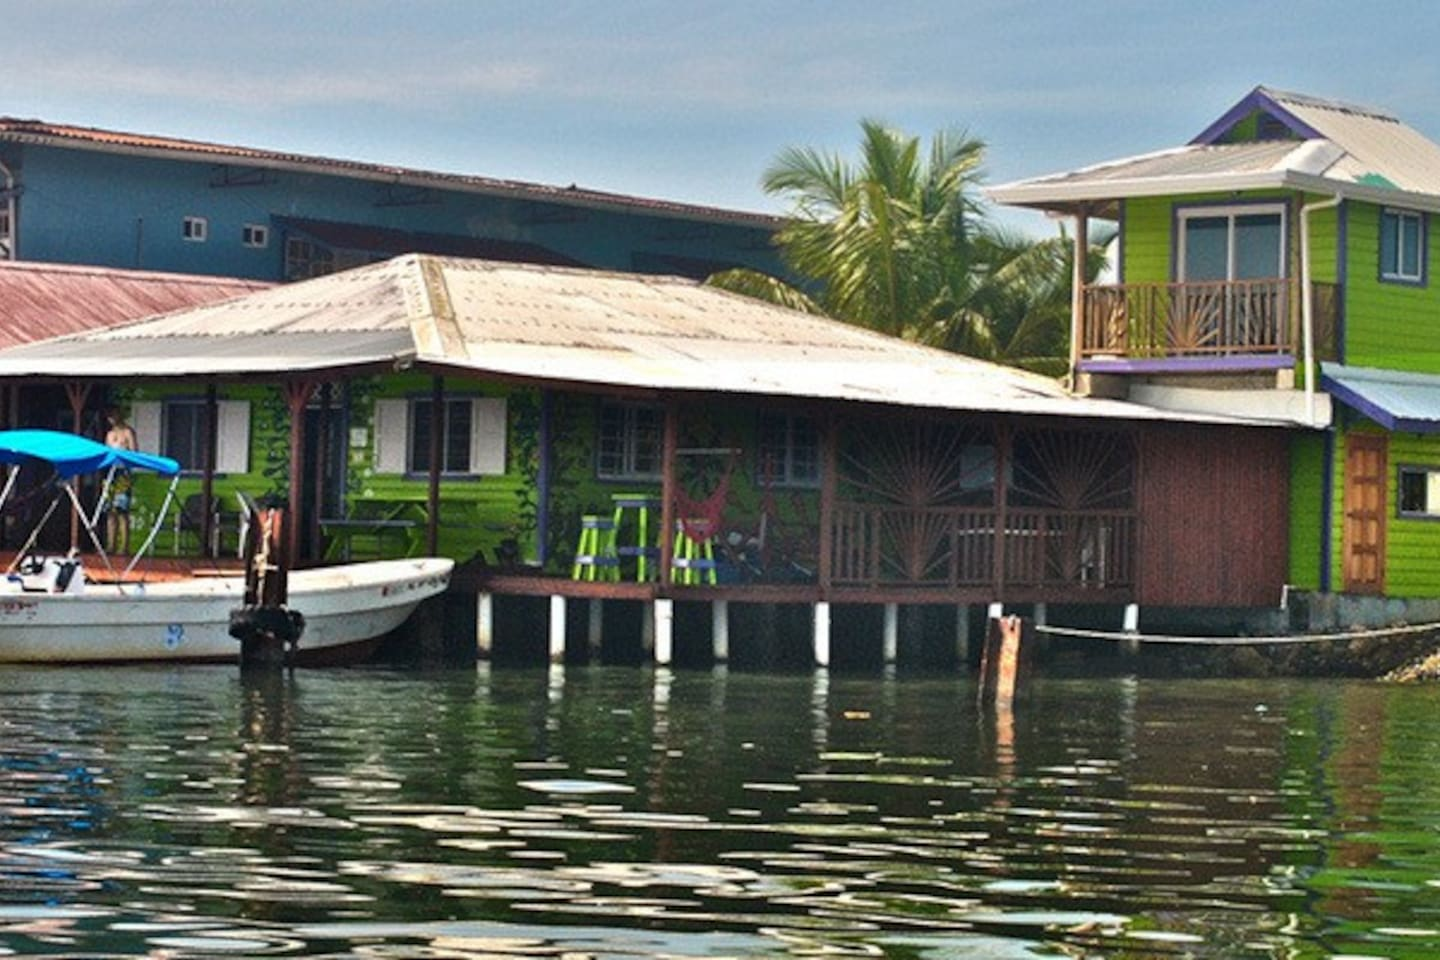 Over the water Hostel, cabana and surf school.